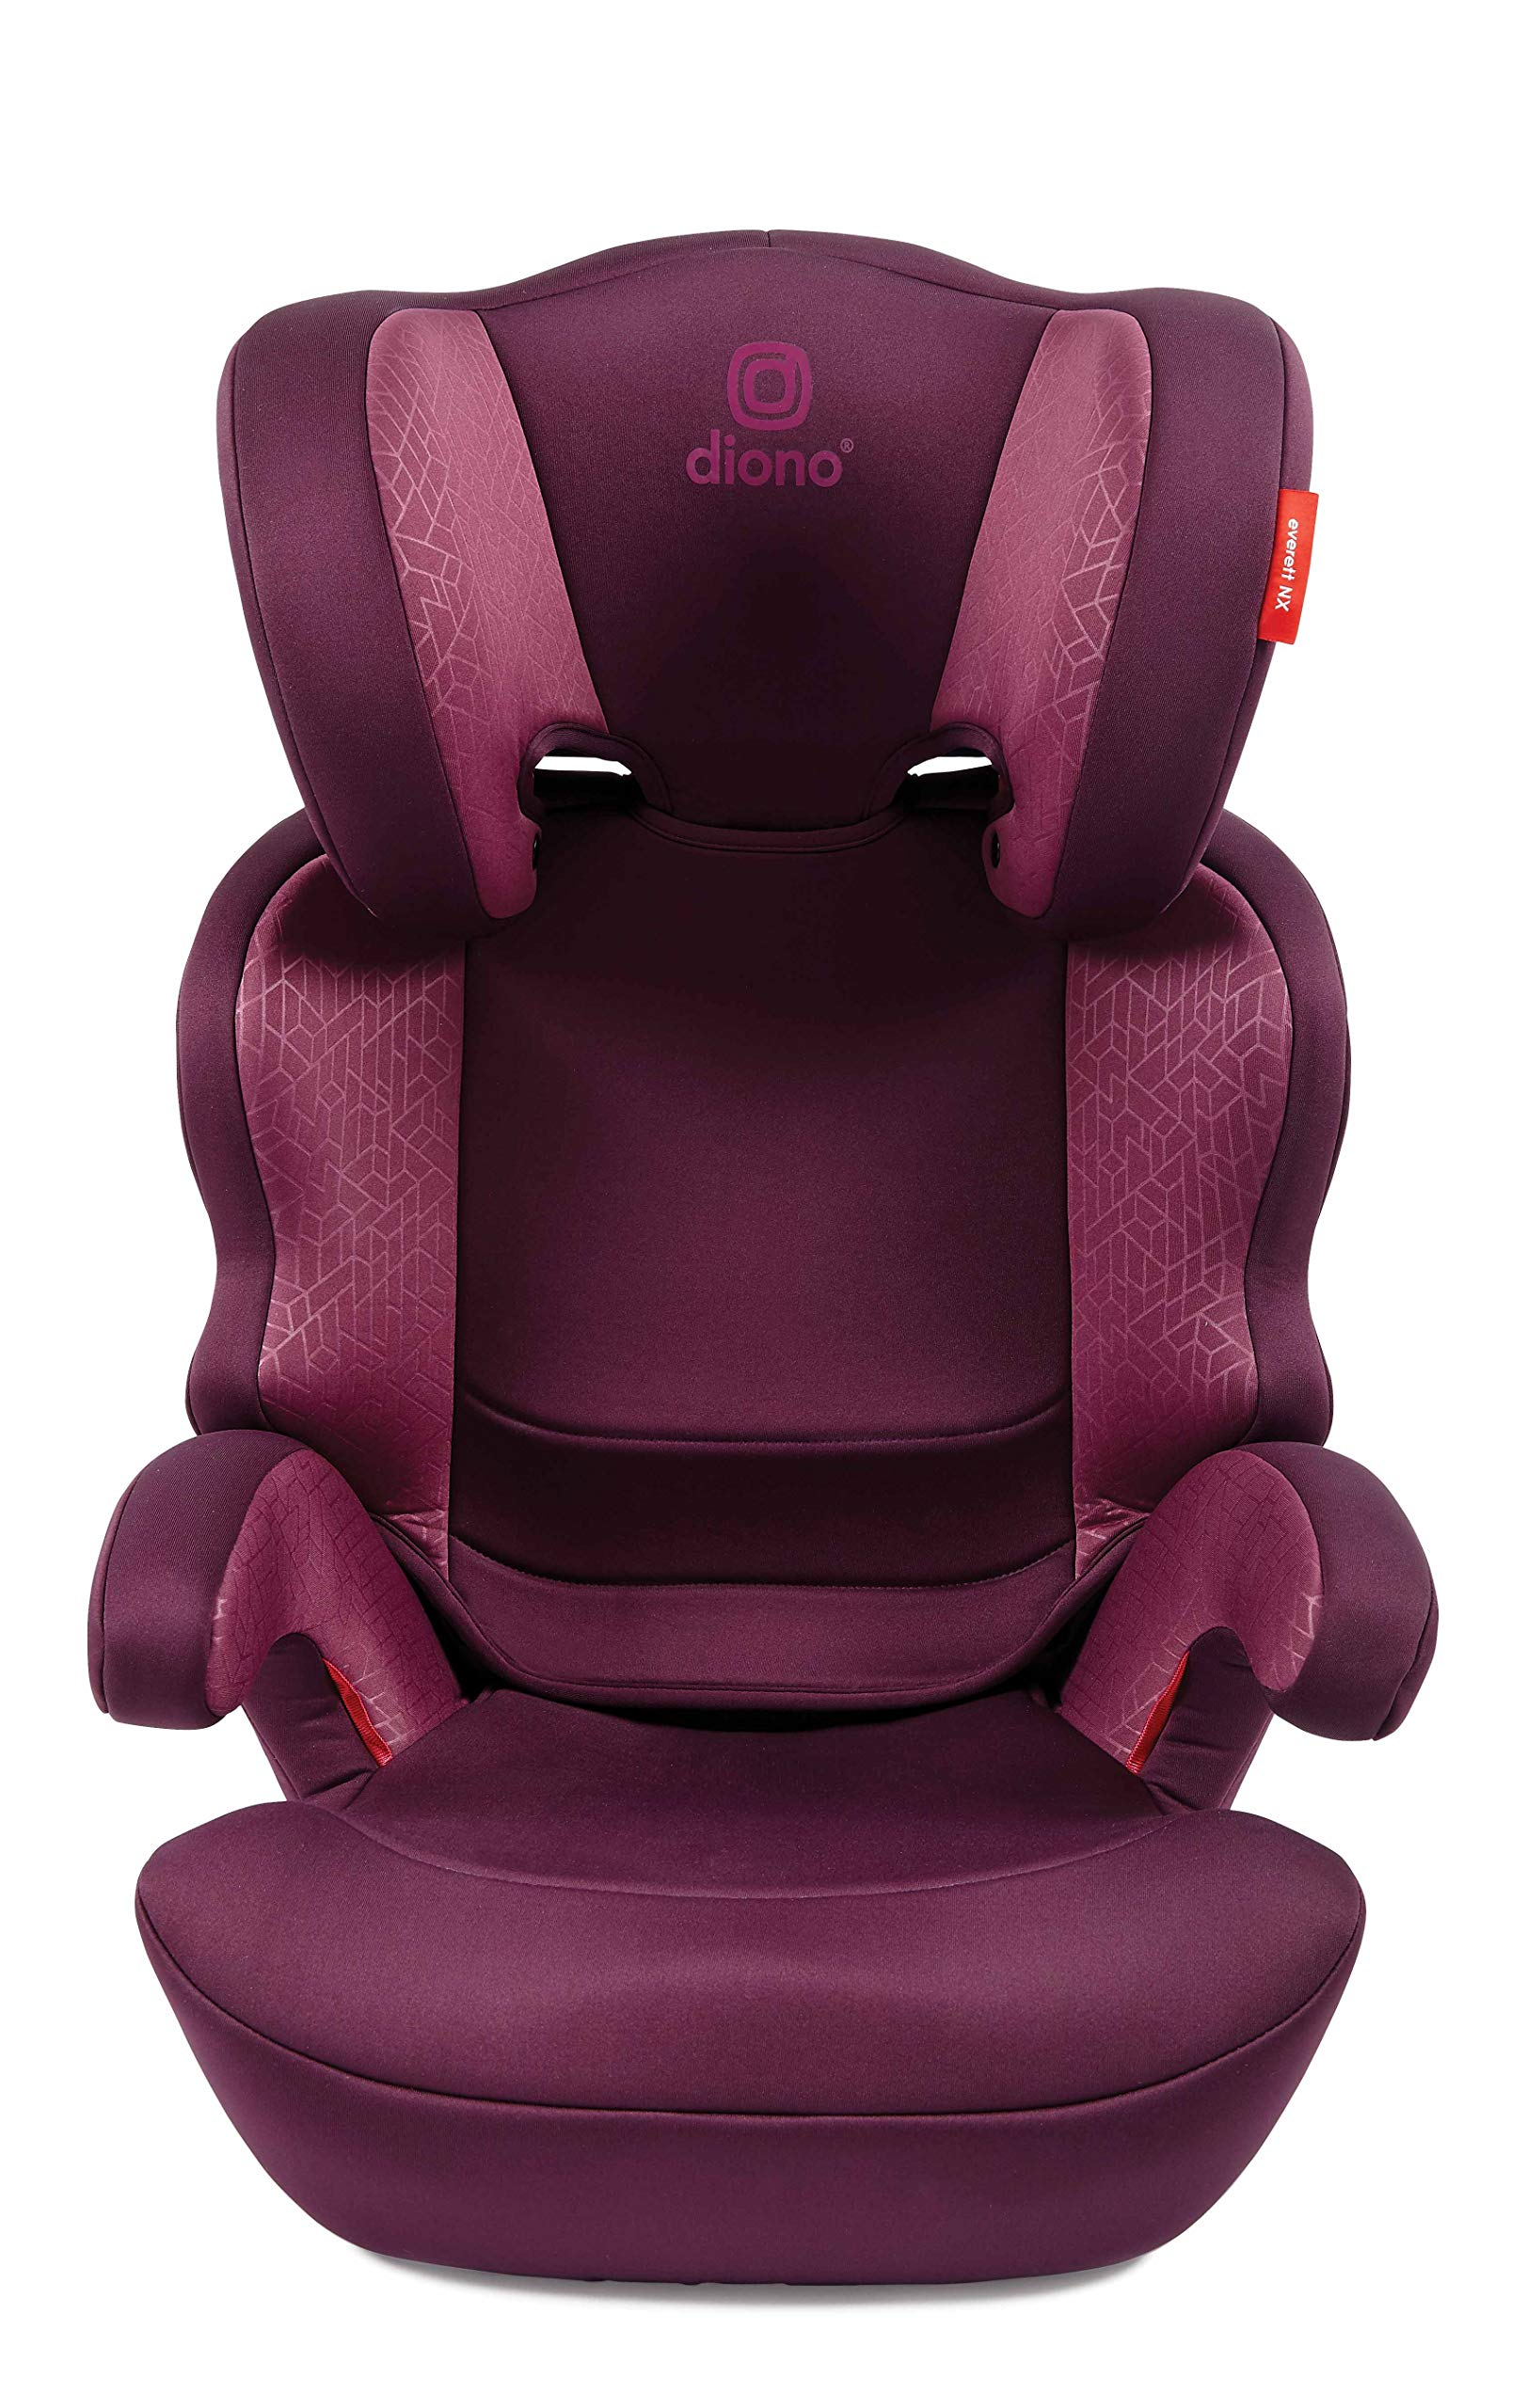 Diono Everett NXT Fix Highback Booster Seat - 7 Position Adjustable Headrest, Group 2/3 (15 - 36 kg and Up to 160 cm In Height), Approx. 4-12 Years, Plum Diono Designed to grow: group 2/3 car seat is suitable from 18kg - 50kg, approx. 4 to 12 years old. The 7-position adjustable headrest can be altered using the handle on the back of the seat Superior safety: cushioned side impact protection has been engineered and tested to the highest standards. The ergonomic design includes extra padding to provide comfort and security as a child grows Universal connectivity: parents can install the seat using the vehicle seatbelt or use the integrated rigid latch connectors that anchor the seat to the car allowing the child to buckle themselves in 3